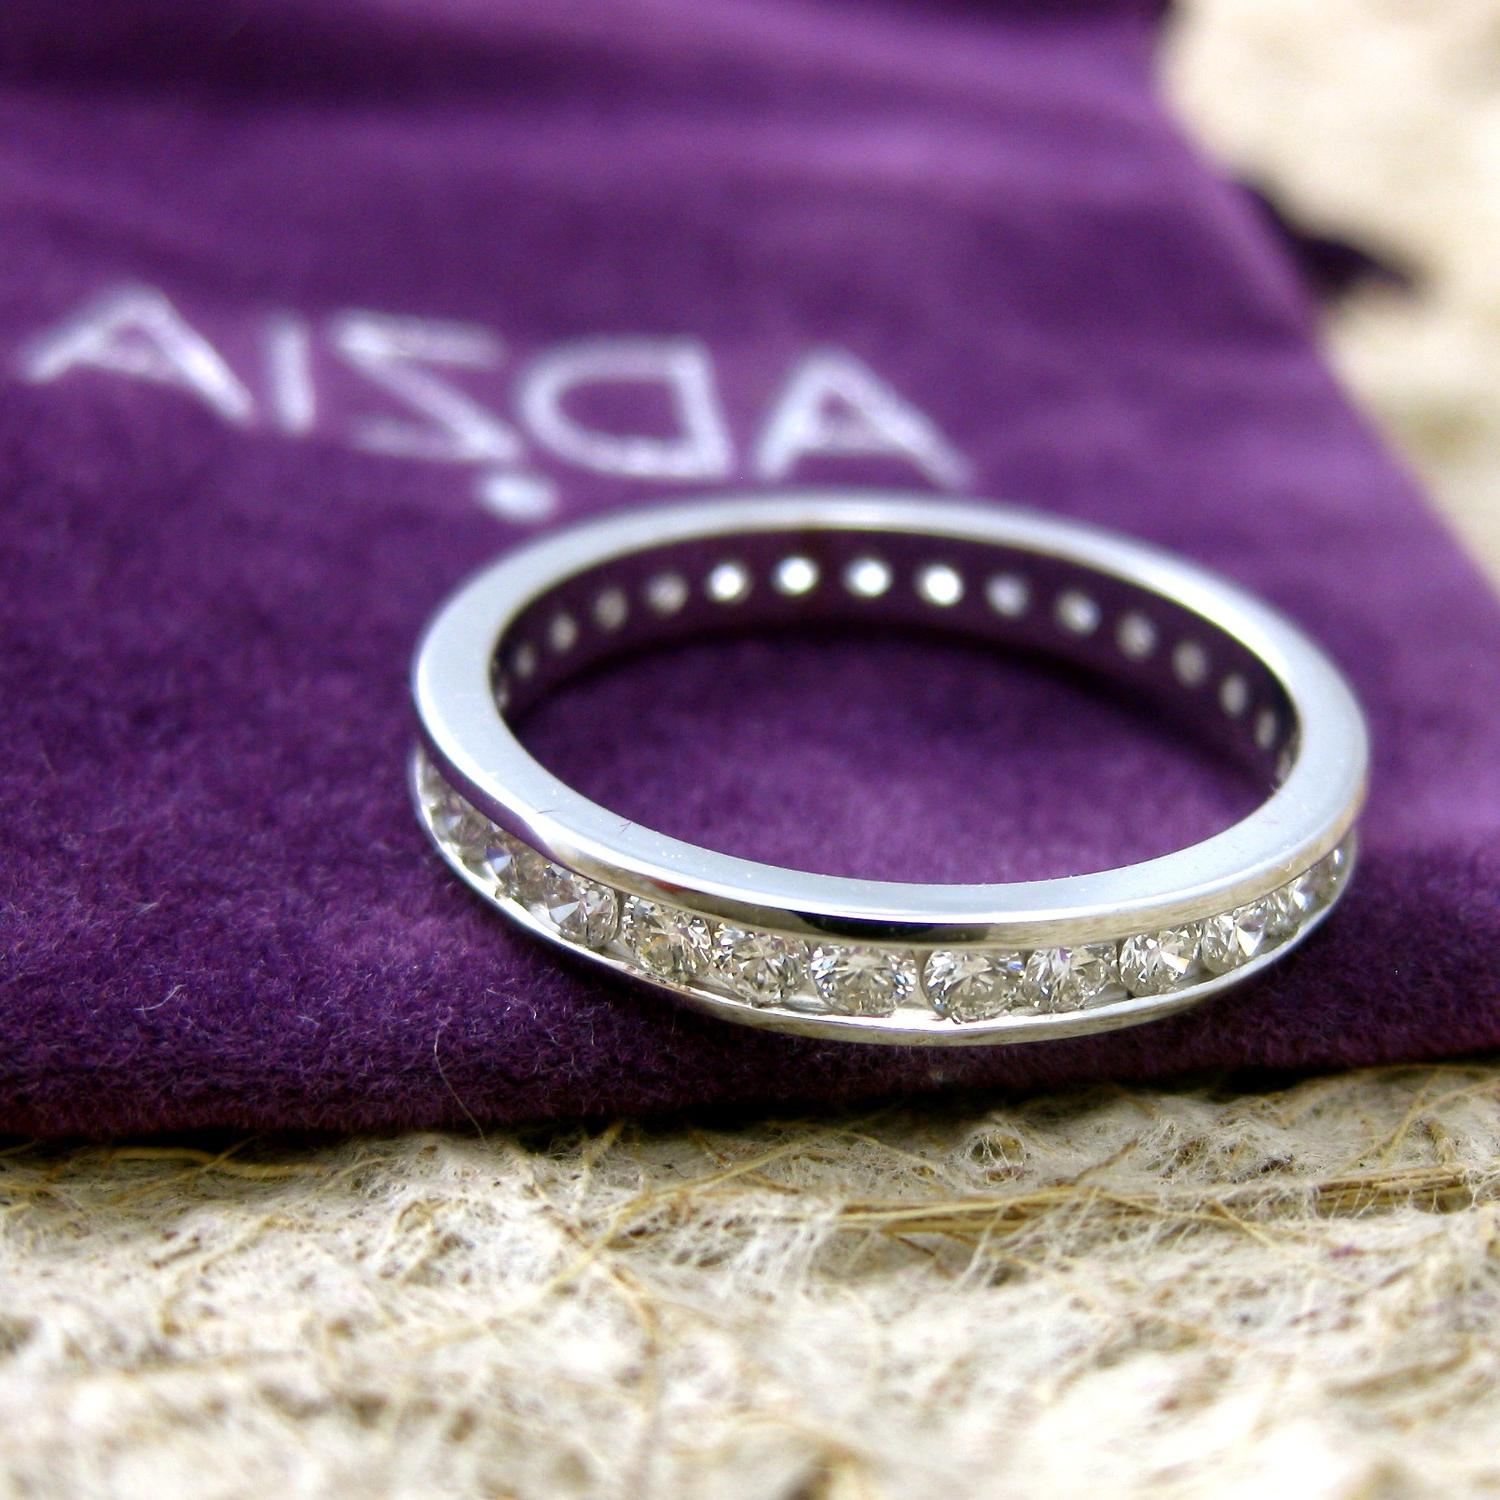 14K White Gold Diamond Eternity Wedding Band. From AdziasJewelryAtelier